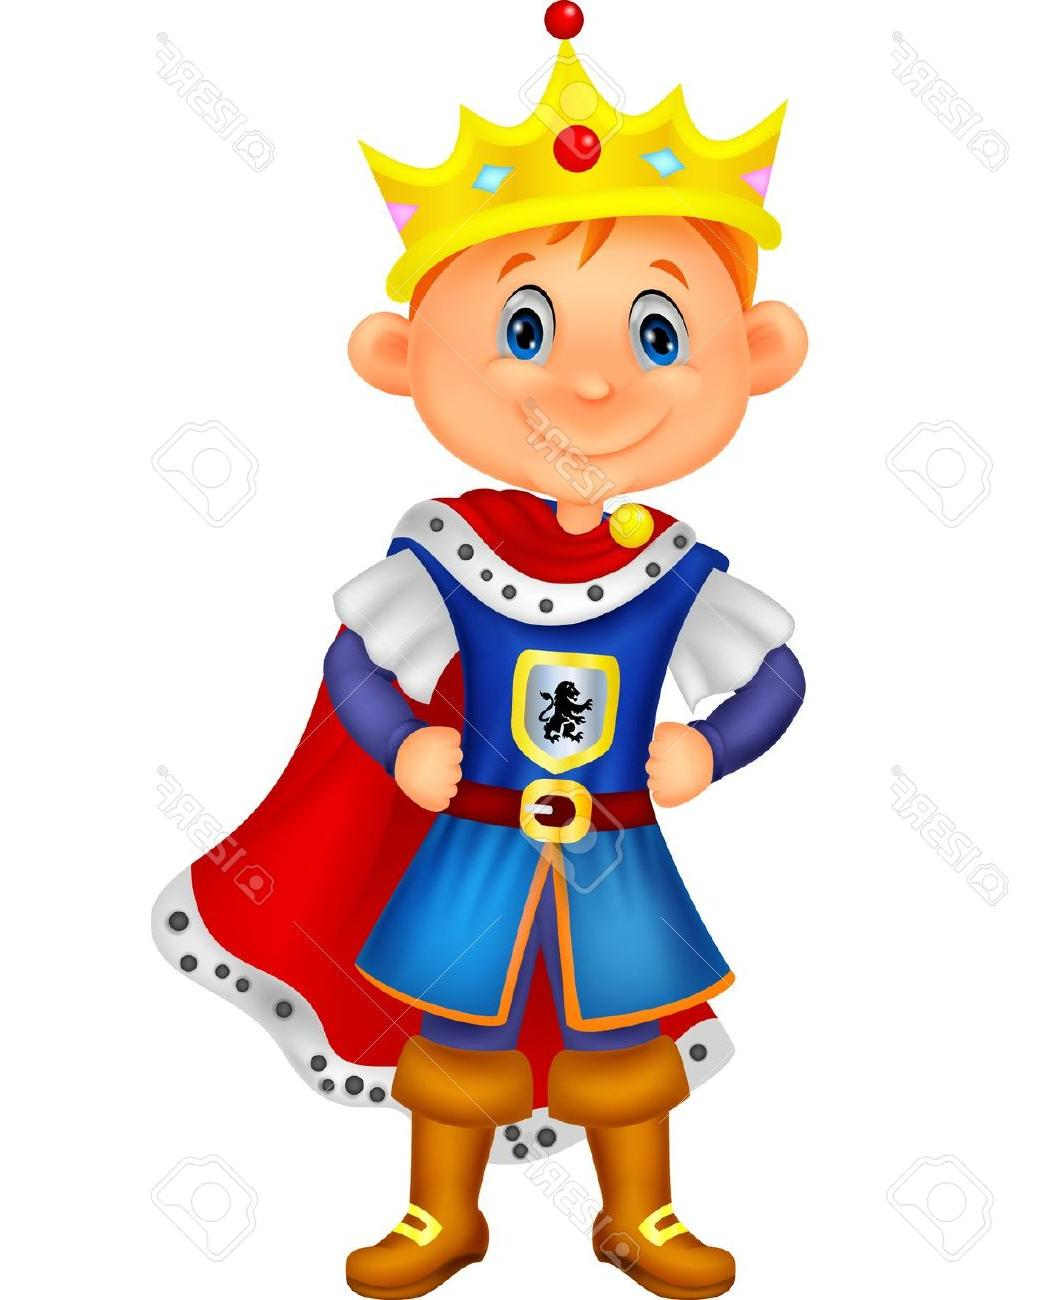 King clipart 6 » Clipart Station.